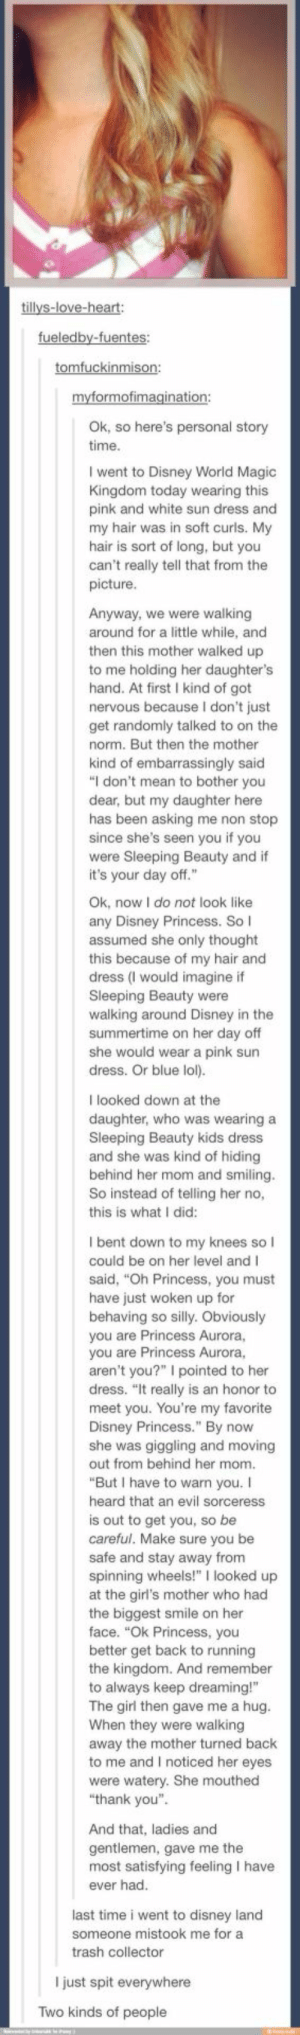 "Tumblr users go to Disneylandomg-humor.tumblr.com: tillys-love-heart:  fueledby-fuentes:  tomfuckinmison:  myformofimagination:  Ok, so here's personal story  time.  I went to Disney World Magic  Kingdom today wearing this  pink and white sun dress and  my hair was in soft curls. My  hair is sort of long, but you  can't really tell that from the  picture.  Anyway, we were walking  around for a little while, and  then this mother walked up  to me holding her daughter's  hand. At first I kind of got  nervous because I don't just  get randomly talked to on the  norm. But then the mother  kind of embarrassingly said  ""I don't mean to bother you  dear, but my daughter here  has been asking me non stop  since she's seen you if you  were Sleeping Beauty and if  it's your day off.""  Ok, now I do not look like  any Disney Princess. So I  assumed she only thought  this because of my hair and  dress (I would imagine if  Sleeping Beauty were  walking around Disney in the  summertime on her day off  she would wear a pink sun  dress. Or blue lol).  I looked down at the  daughter, who was wearing a  Sleeping Beauty kids dress  and she was kind of hiding  behind her mom and smiling.  So instead of telling her no,  this is what I did:  I bent down to my knees sol  could be on her level andI  said, ""Oh Princess, you must  have just woken up for  behaving so silly. Obviously  you are Princess Aurora,  you are Princess Aurora,  aren't you?"" I pointed to her  dress. ""It really is an honor to  meet you. You're my favorite  Disney Princess."" By now  she was giggling and moving  out from behind her mom.  ""But I have to warn you. I  heard that an evil sorceress  is out to get you, so be  careful. Make sure you be  safe and stay away from  spinning wheels!"" I looked up  at the girl's mother who had  the biggest smile on her  face. ""Ok Princess, you  better get back to running  the kingdom. And remember  to always keep dreaming!""  The girl then gave me a hug.  When they were walking  away the mother turned back  to me and I noticed her eyes  were watery. She mouthed  ""thank you"".  And that, ladies and  gentlemen, gave me the  most satisfying feeling I have  ever had.  last time i went to disney land  someone mistook me for a  trash collector  I just spit everywhere  Two kinds of people Tumblr users go to Disneylandomg-humor.tumblr.com"